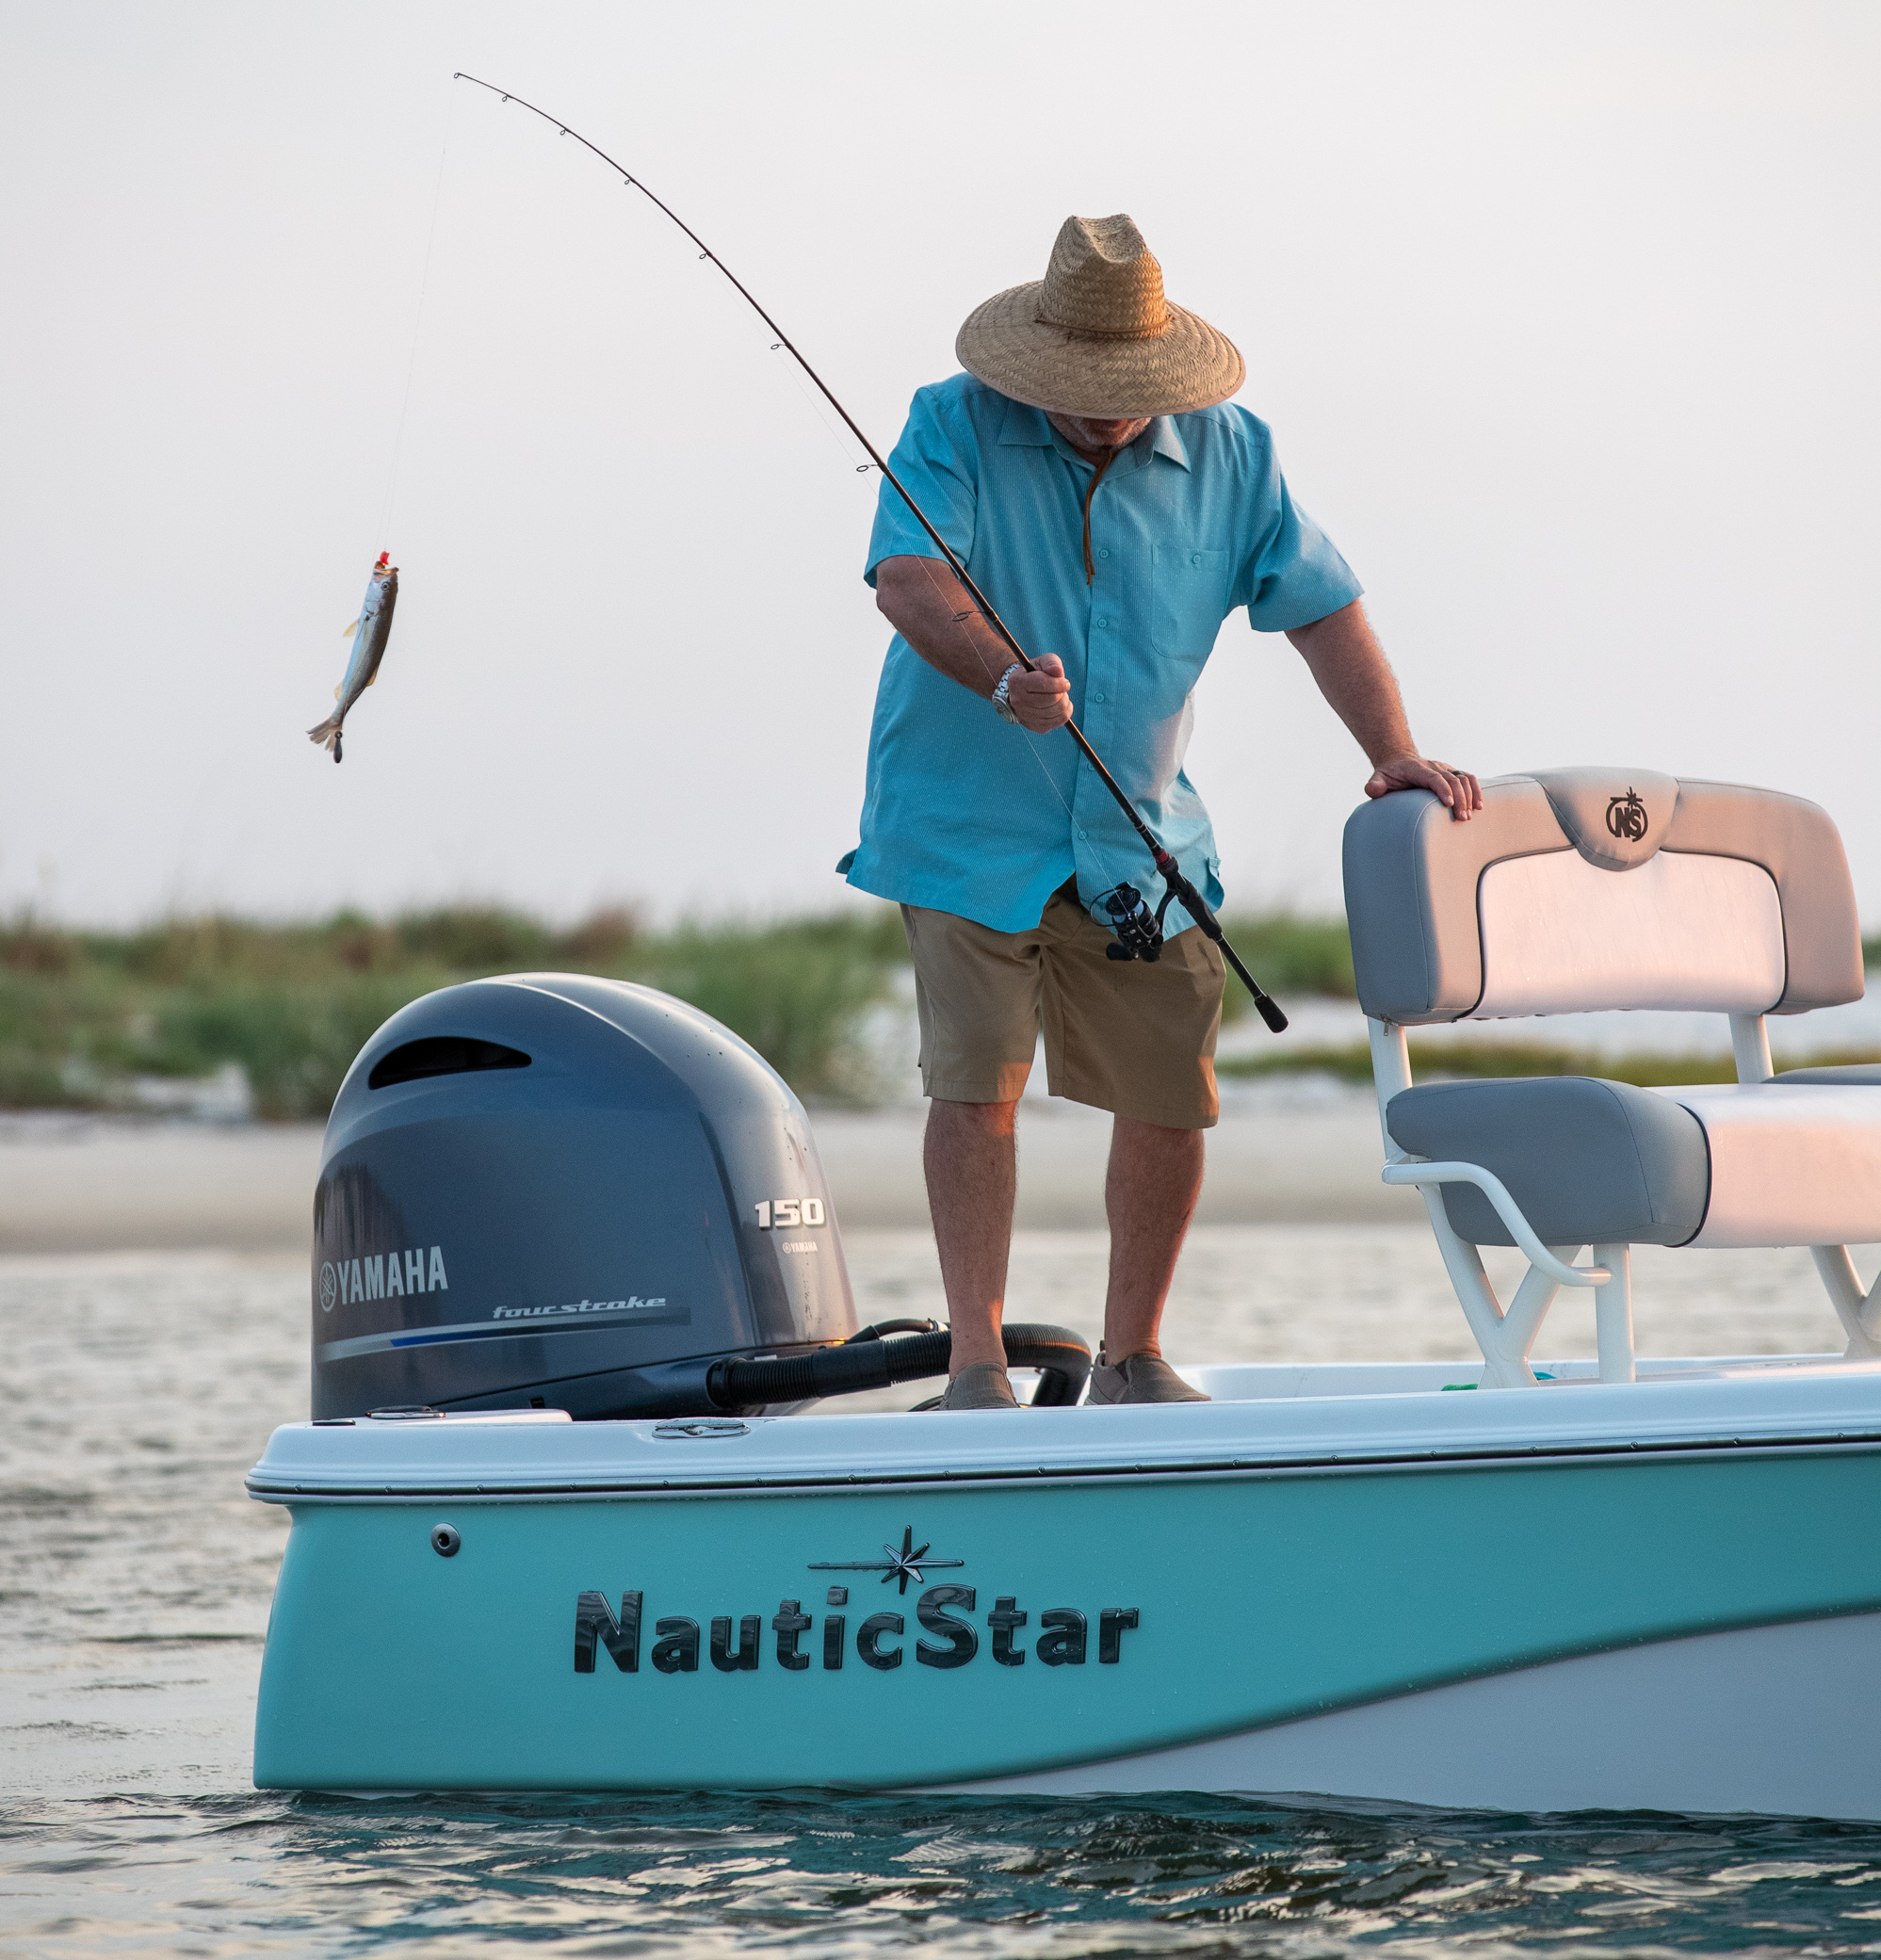 A man catches a fish off the aft deck of a NauticStar 215 Bay boat